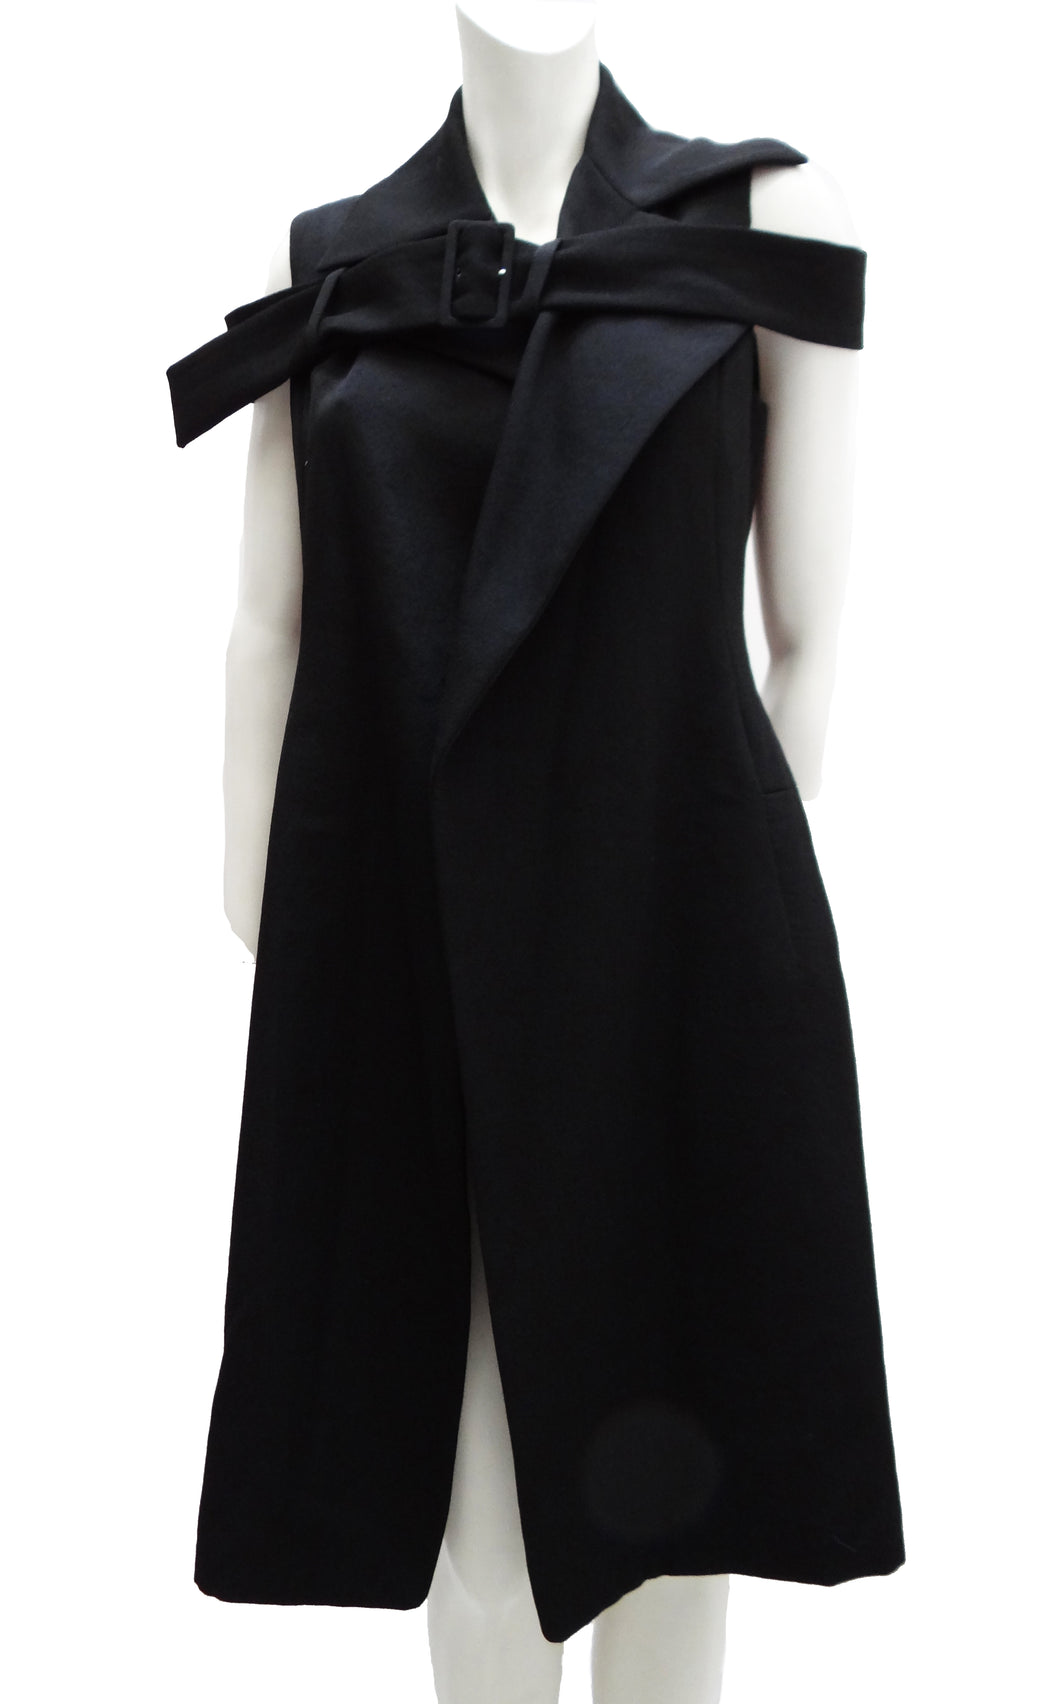 Yohji Yamamoto Tailored Sleeveless Coat with Shoulder Belt, UK10